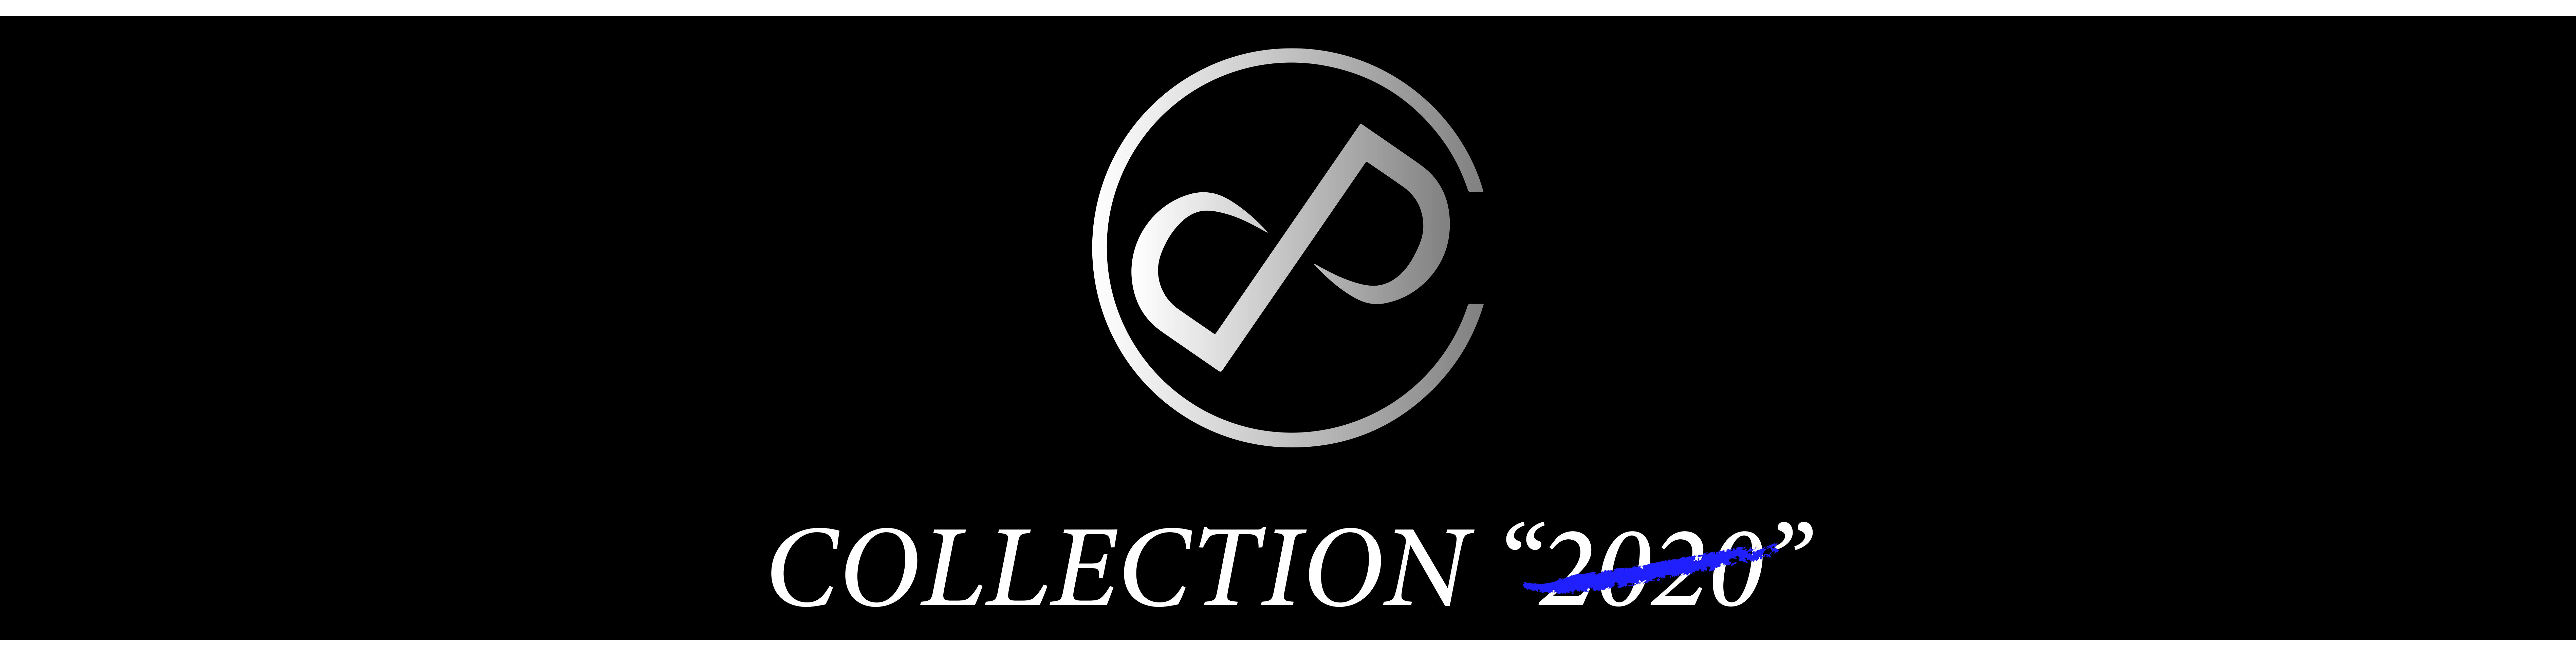 collection 2020  3.png